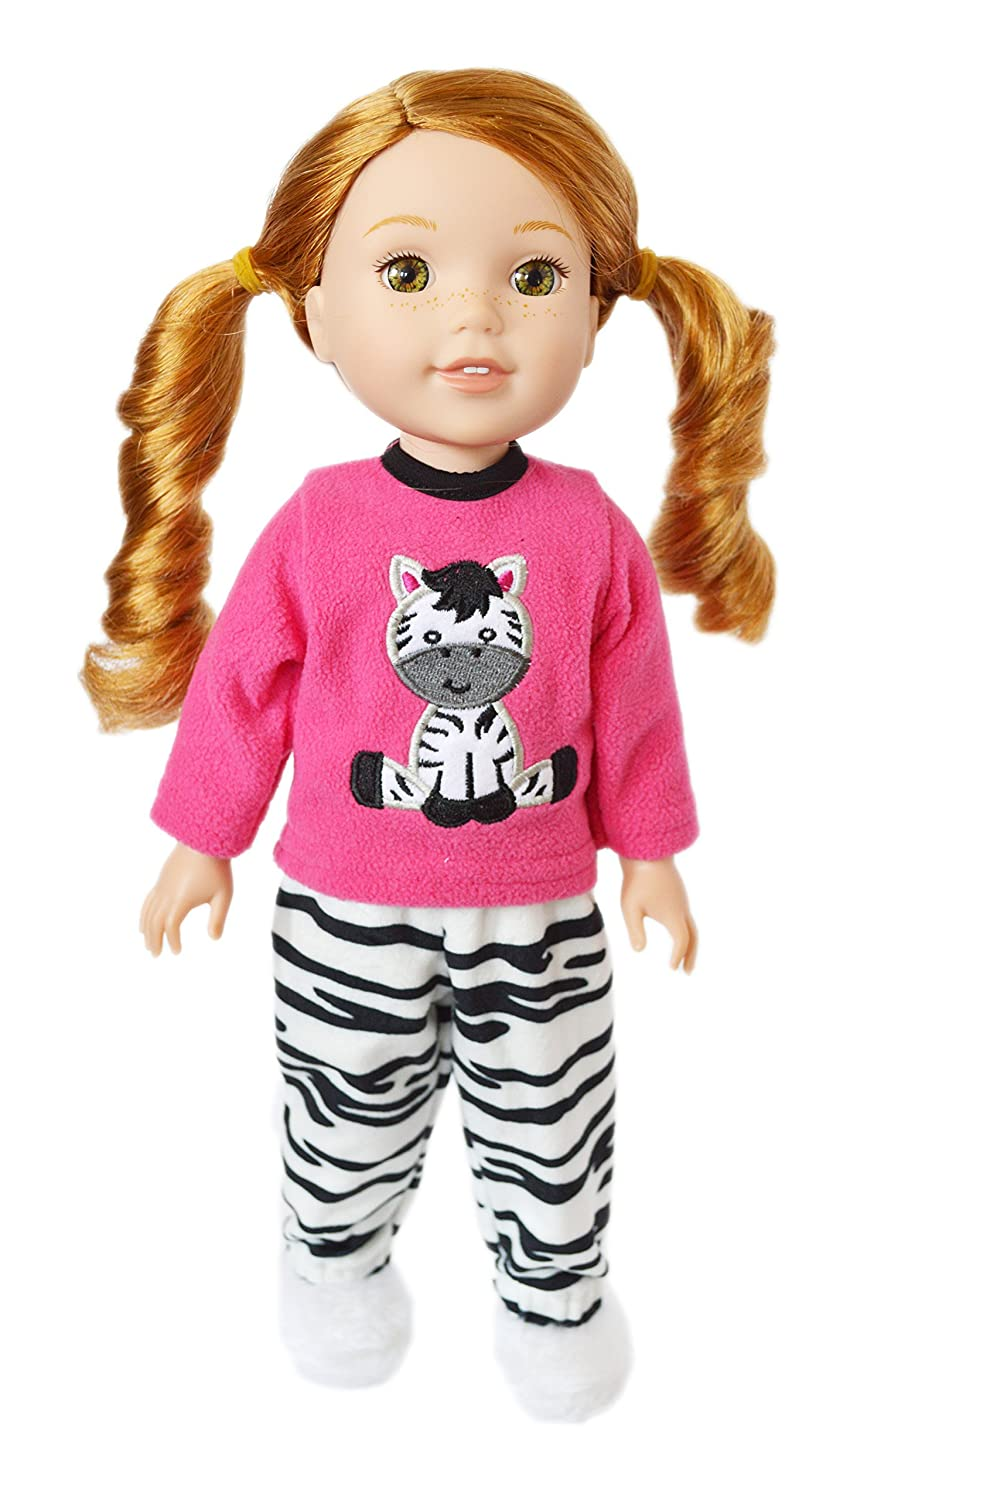 and Glitter Girls Dolls Hearts for Hearts Dolls Brittanys Zebra Pjs Compatible with Wellie Wisher Dolls